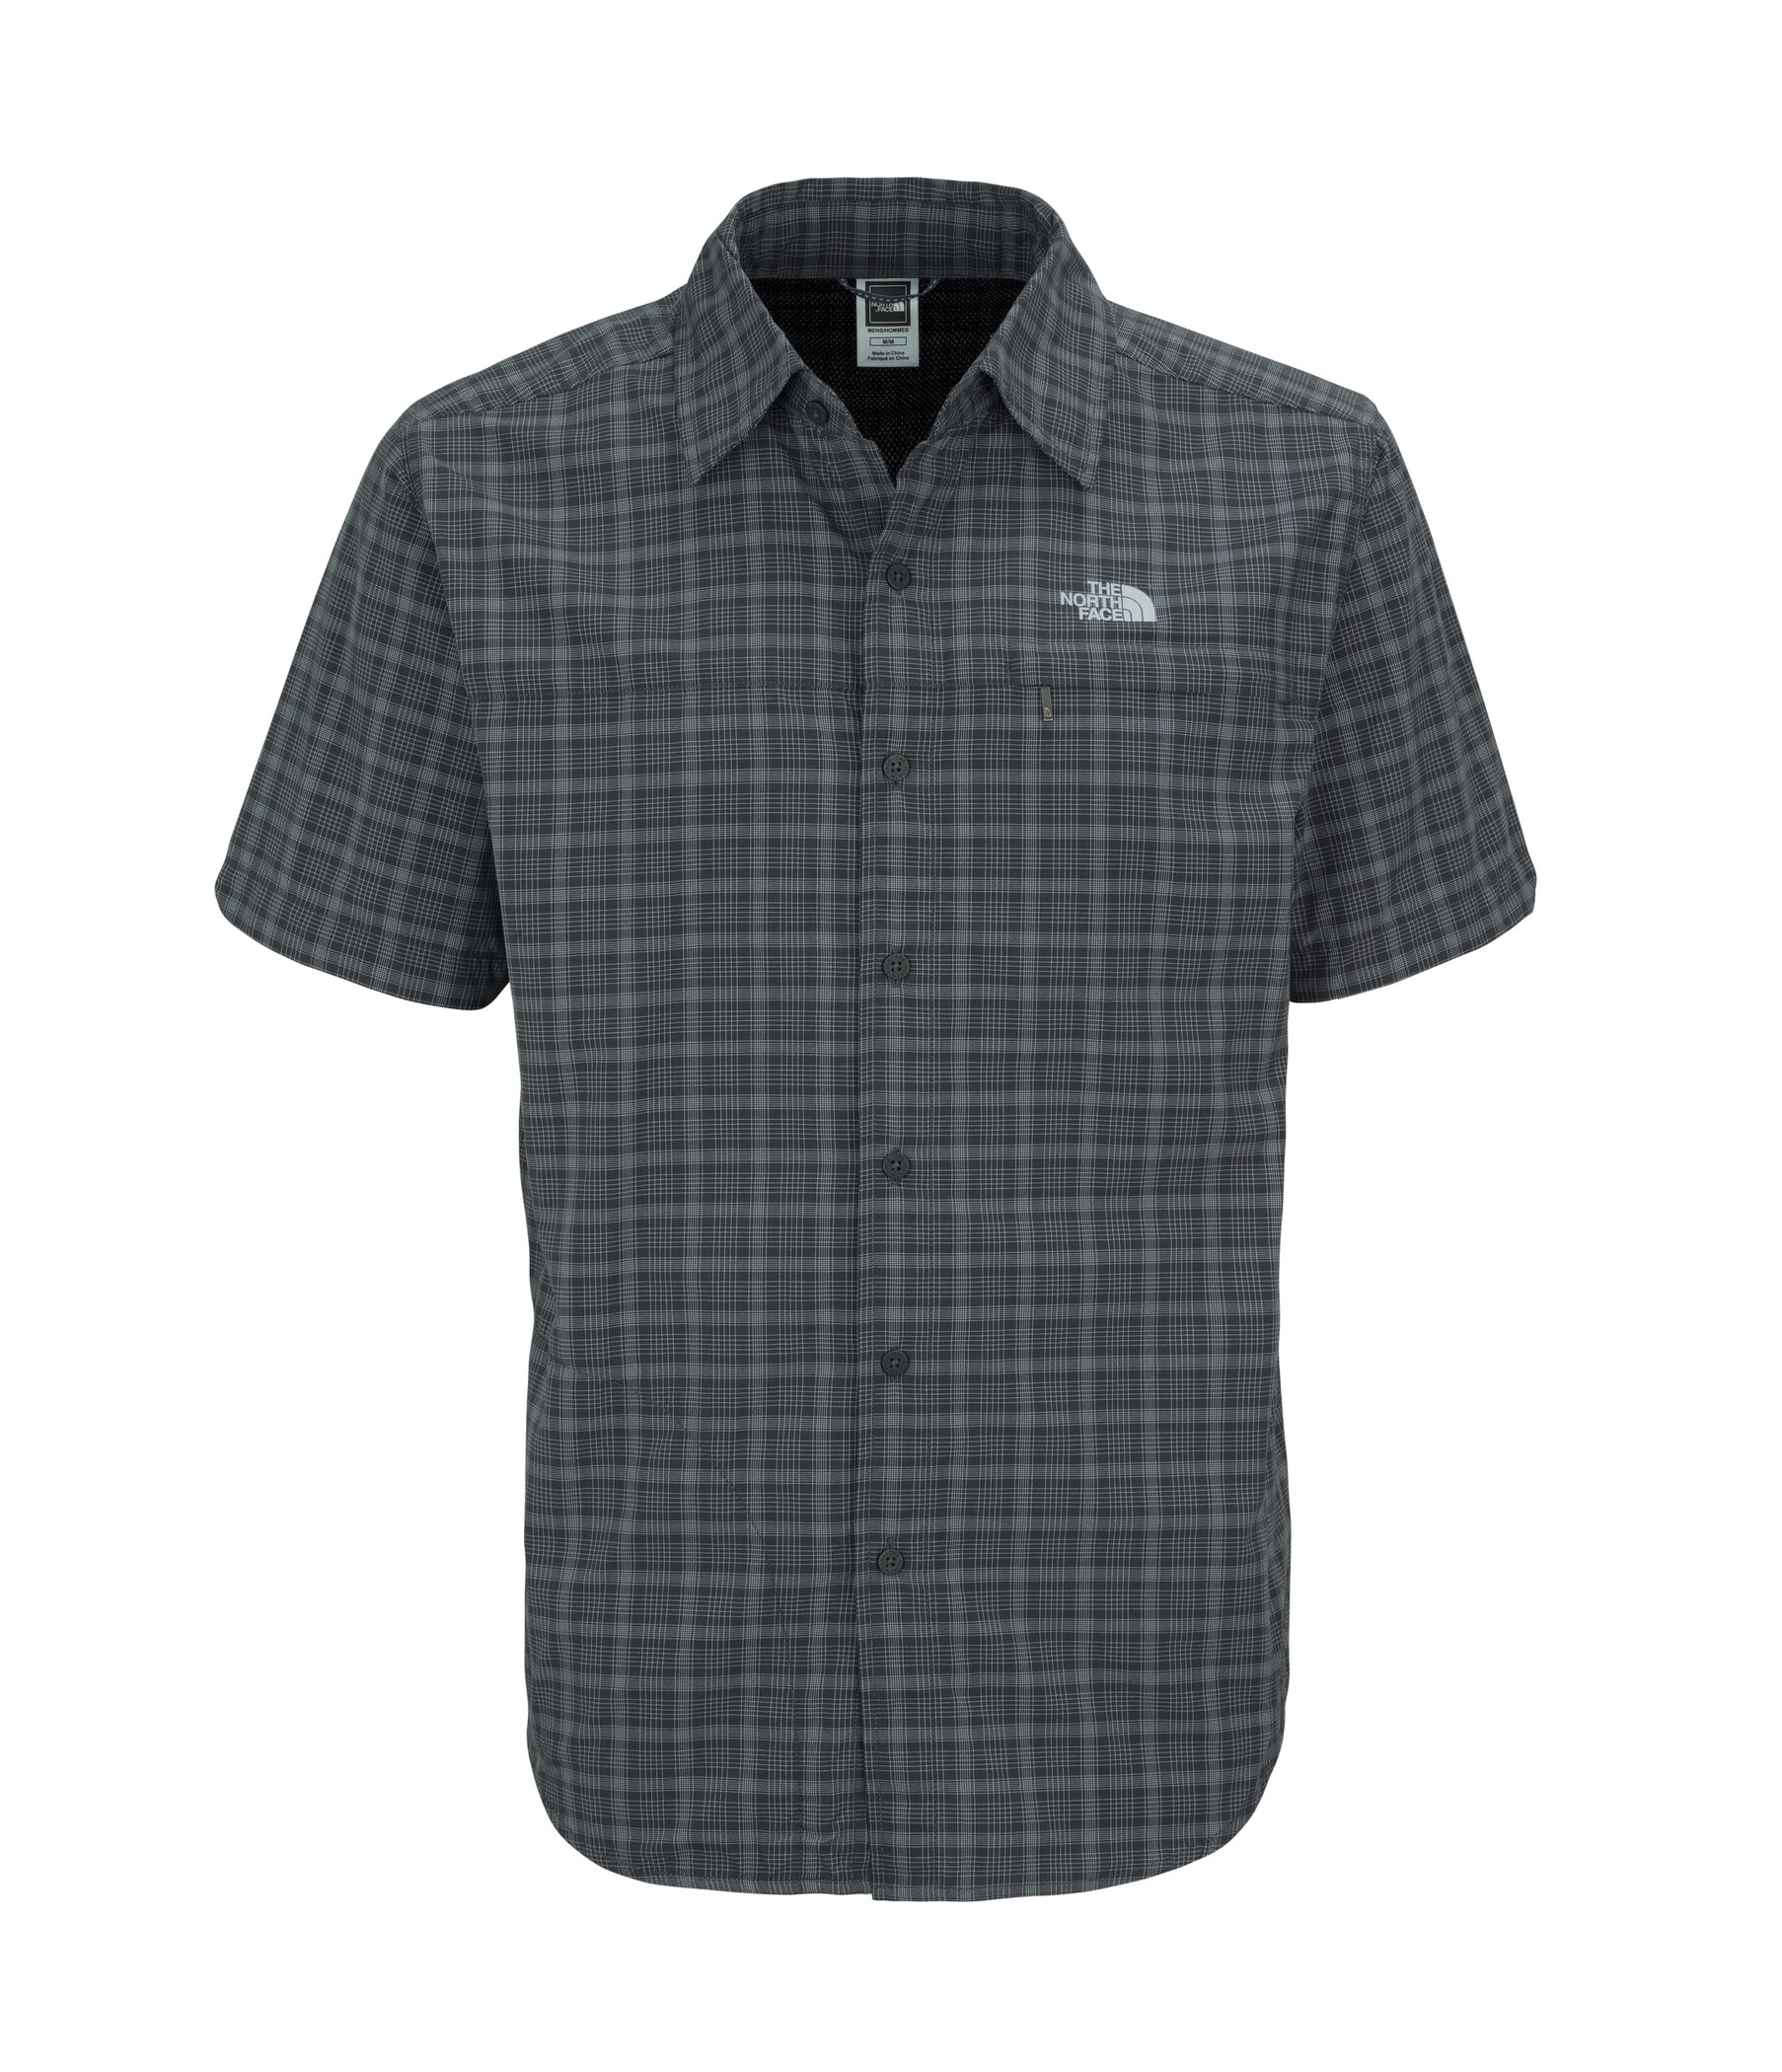 The North Face Men's S/S Ventilation Shirt asphalt grey 2013 M grau Outdoorbekleidung Outdoor Hemd Kurzarm Hemd M